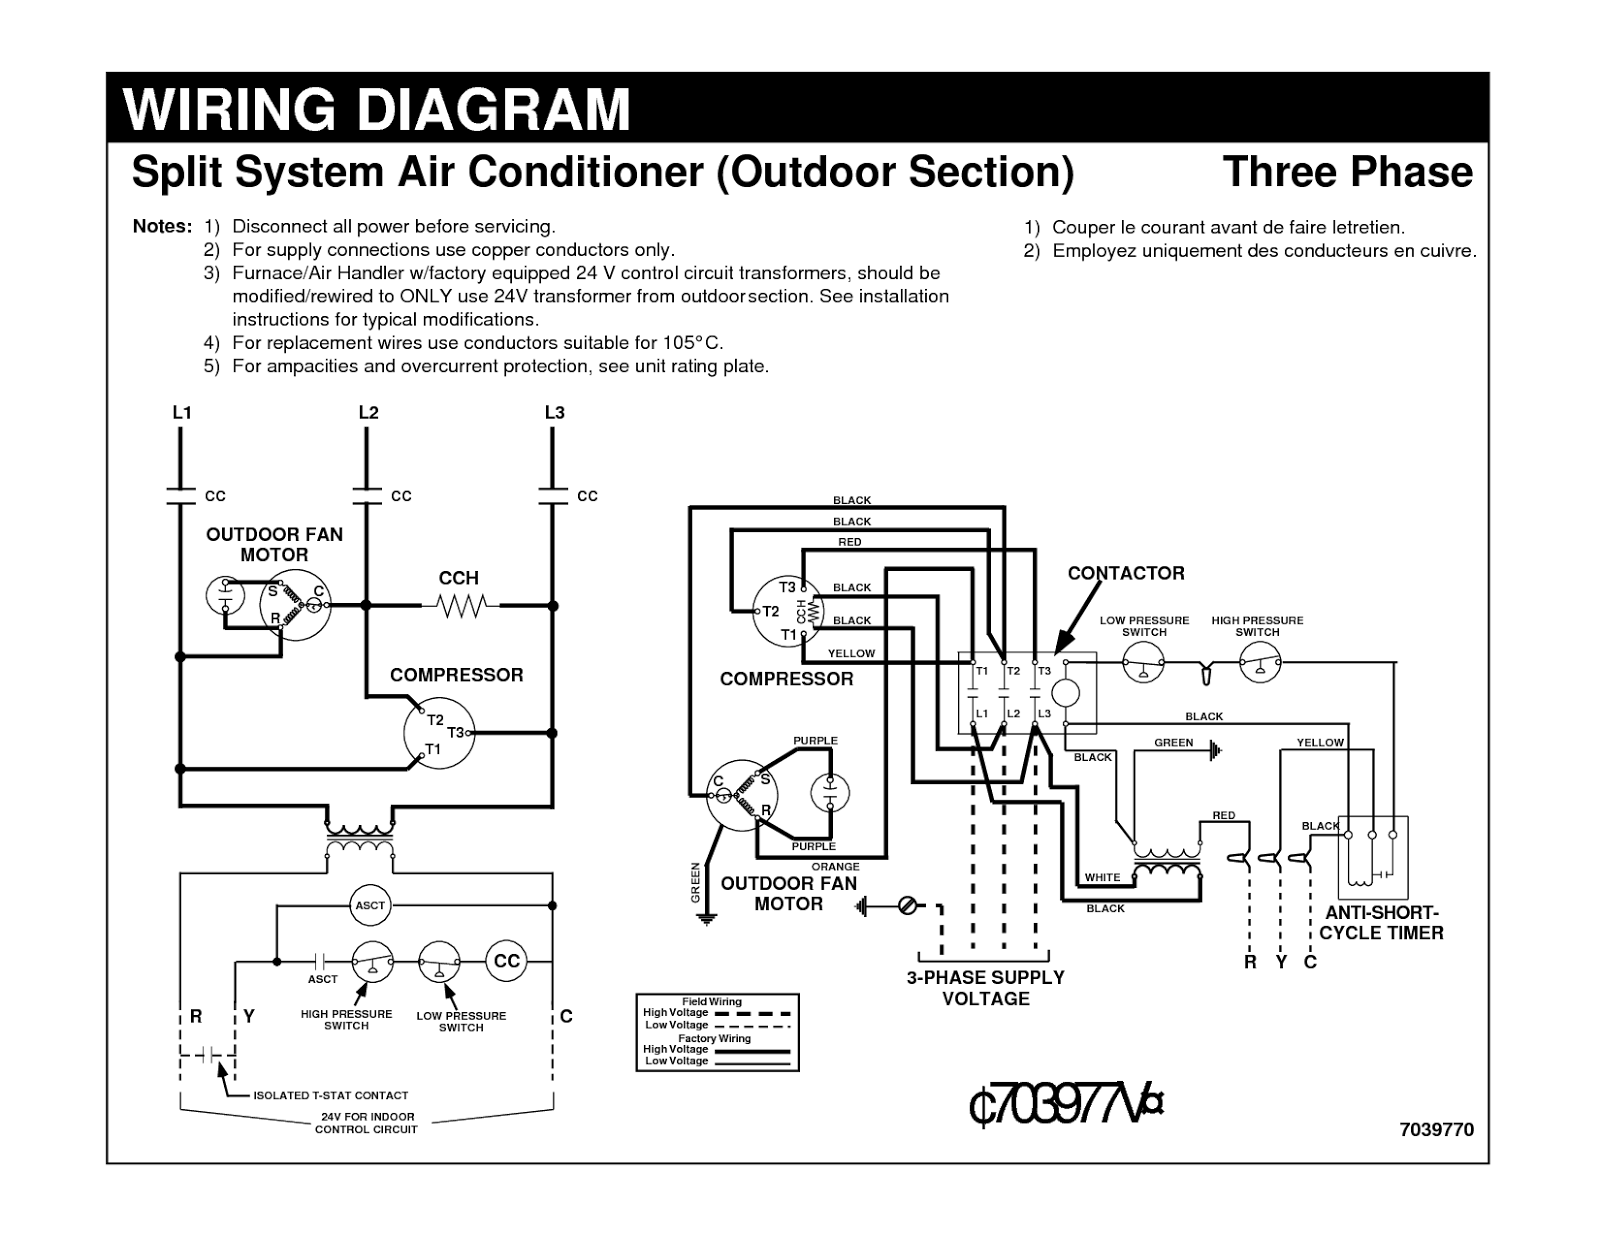 A C Wiring Schematics Circuit And Diagram Hub With Home Blueprints Basic Guide Electrical Diagrams For Air Conditioning Systems Part One Rh Knowhow Com Ac Schematic Outlet